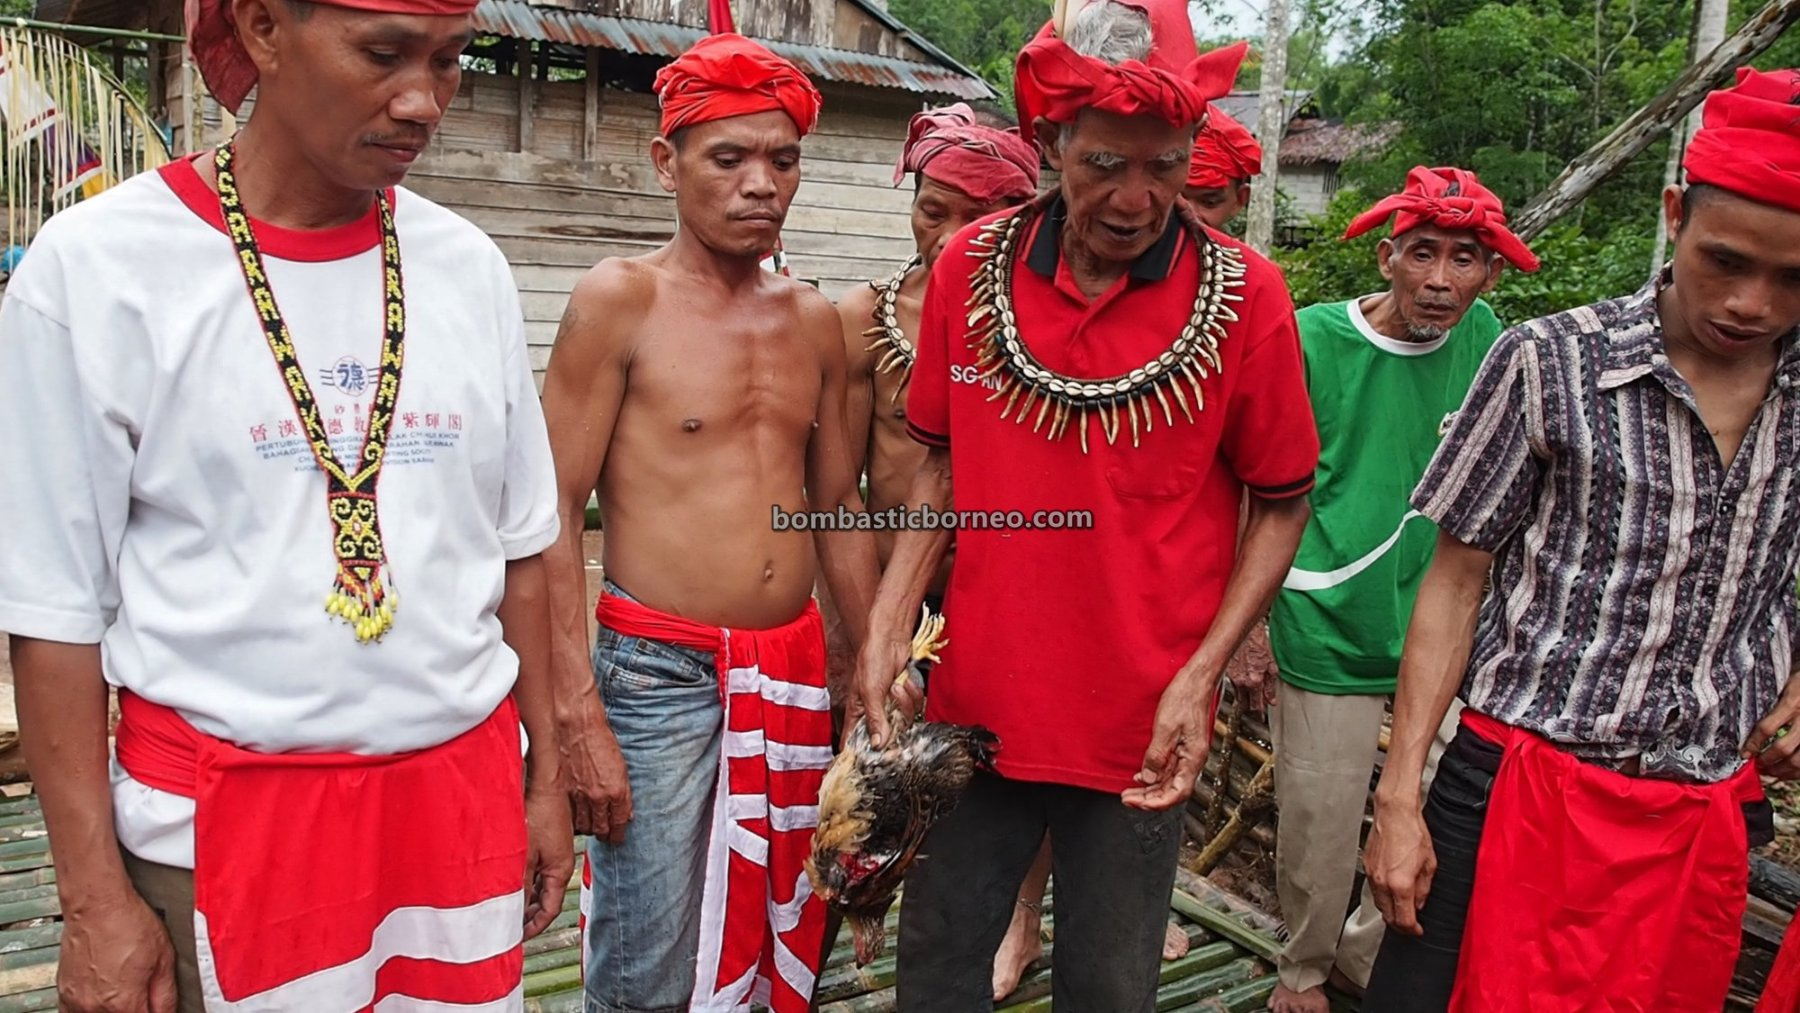 thanksgiving, village, authentic, ritual, Indonesia, Bengkawan, Seluas, indigenous, native, tribal, Tourism, tourist attraction, Trans Borneo, 婆羅洲土著部落, 西加里曼丹比达友文化, 孟加映原住民丰收节